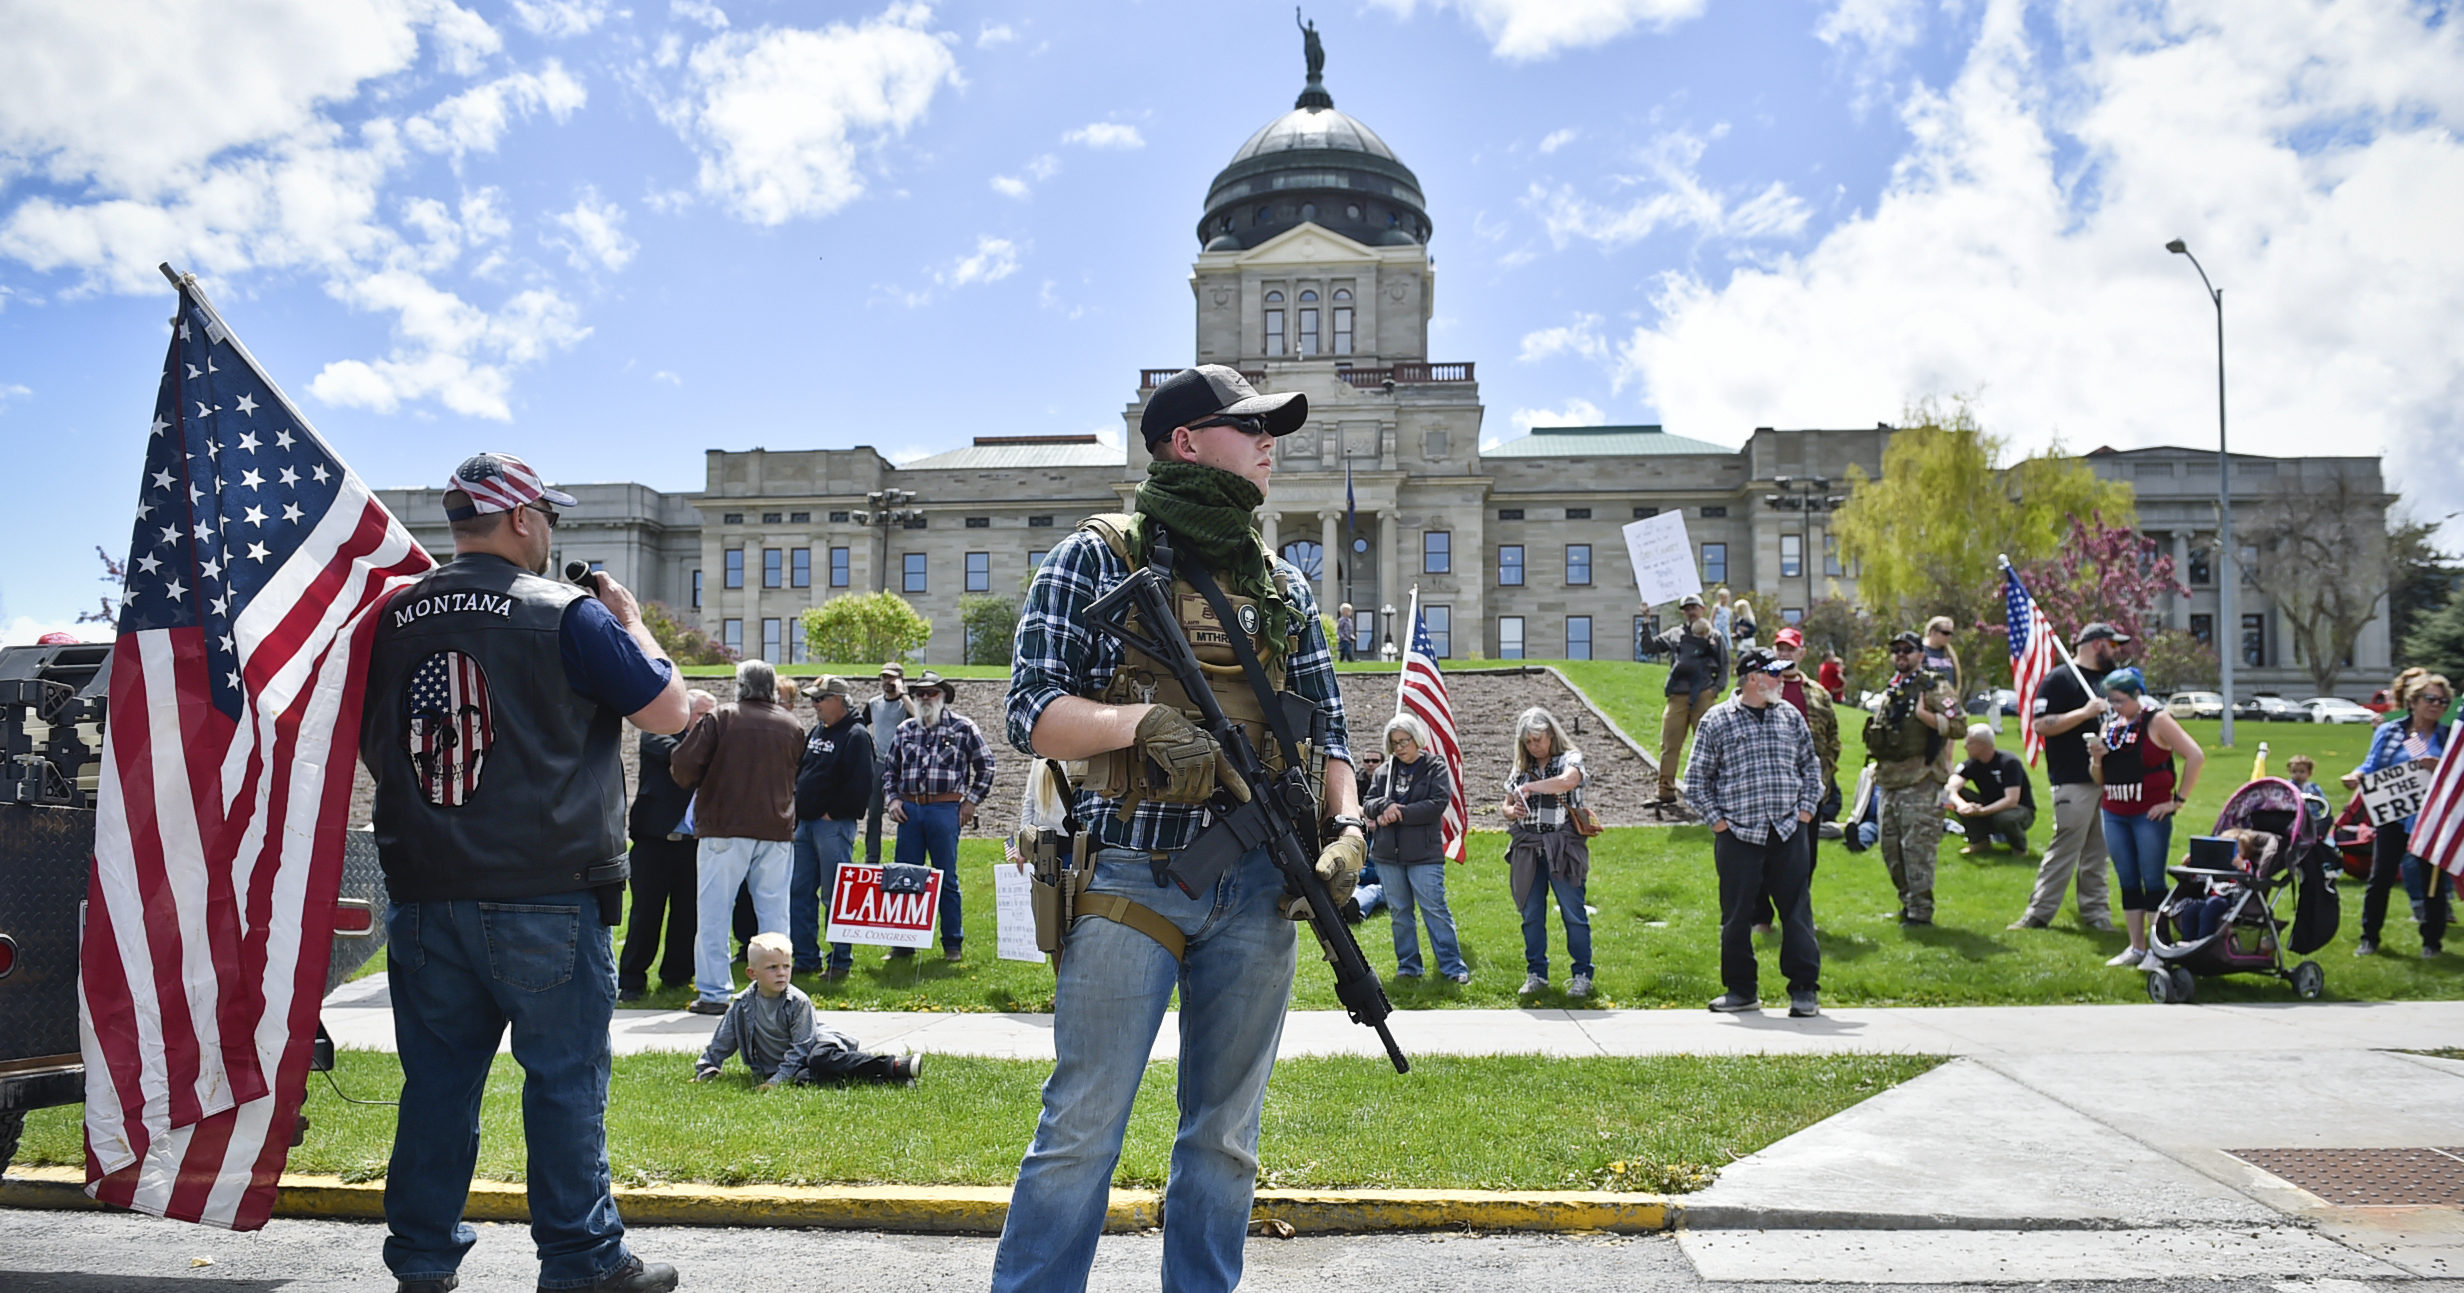 Protesters gather outside the Montana State Capitol in Helena, Montana, on May 20, 2020.